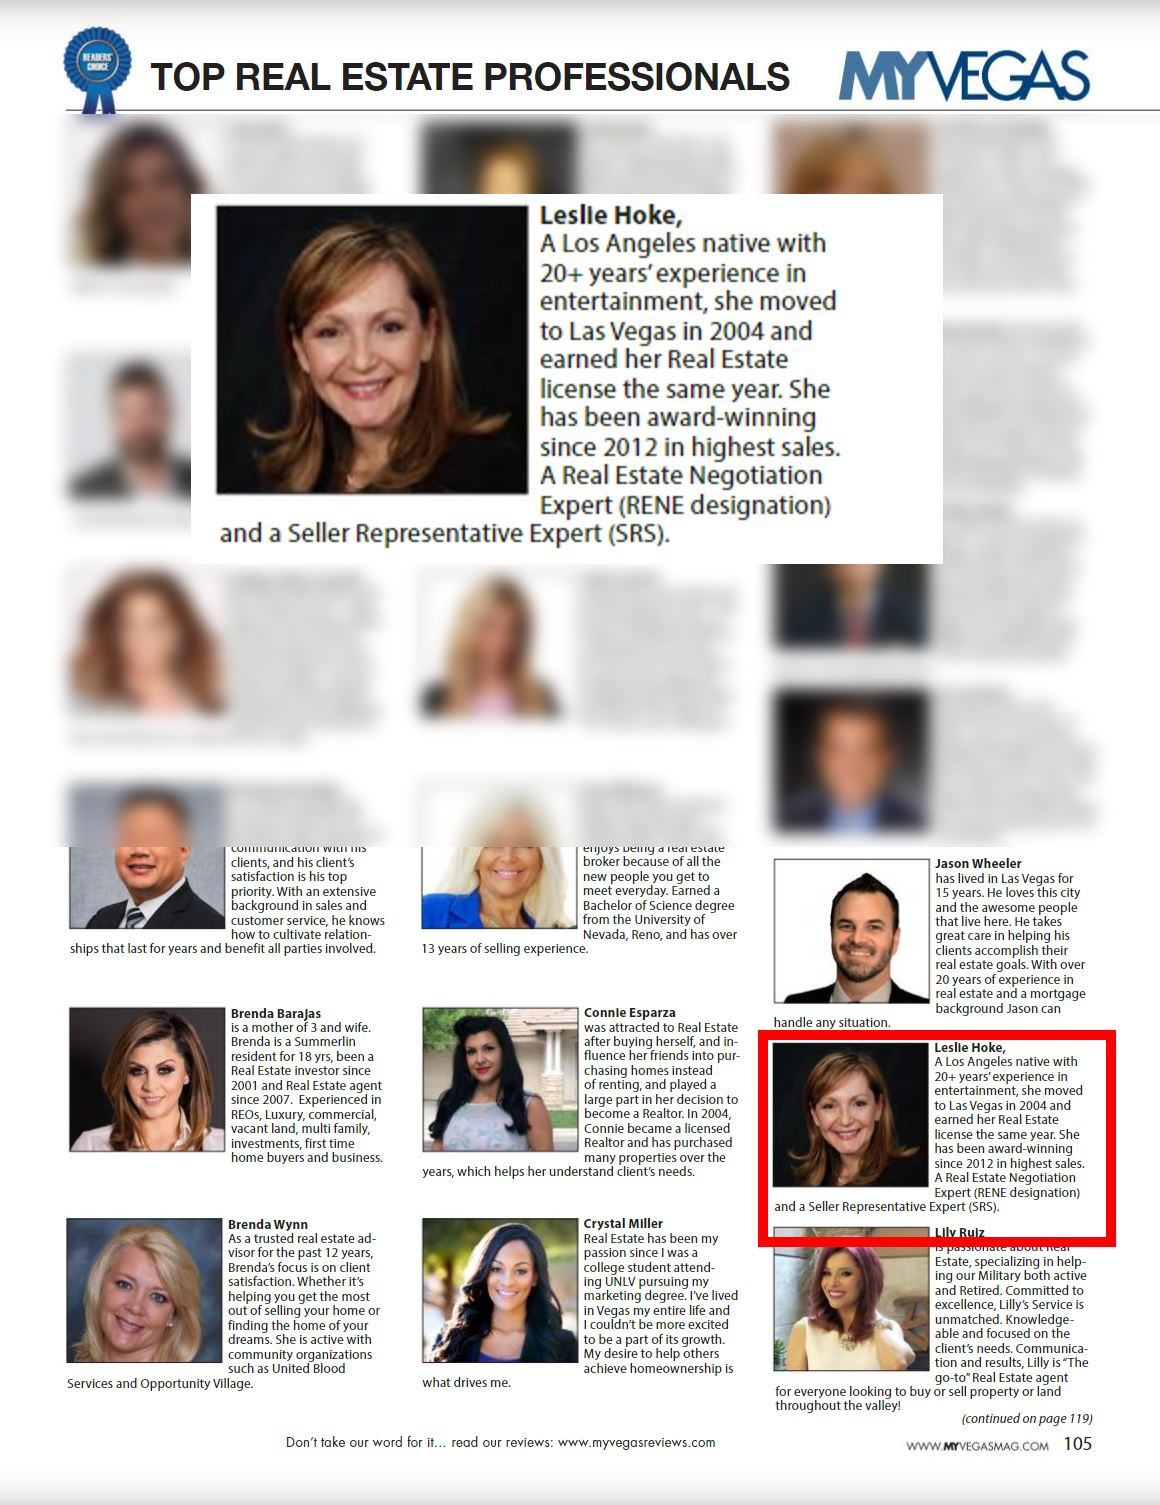 Leslie Hoke Voted among top real estate professionals by MYVEGAS Magazine